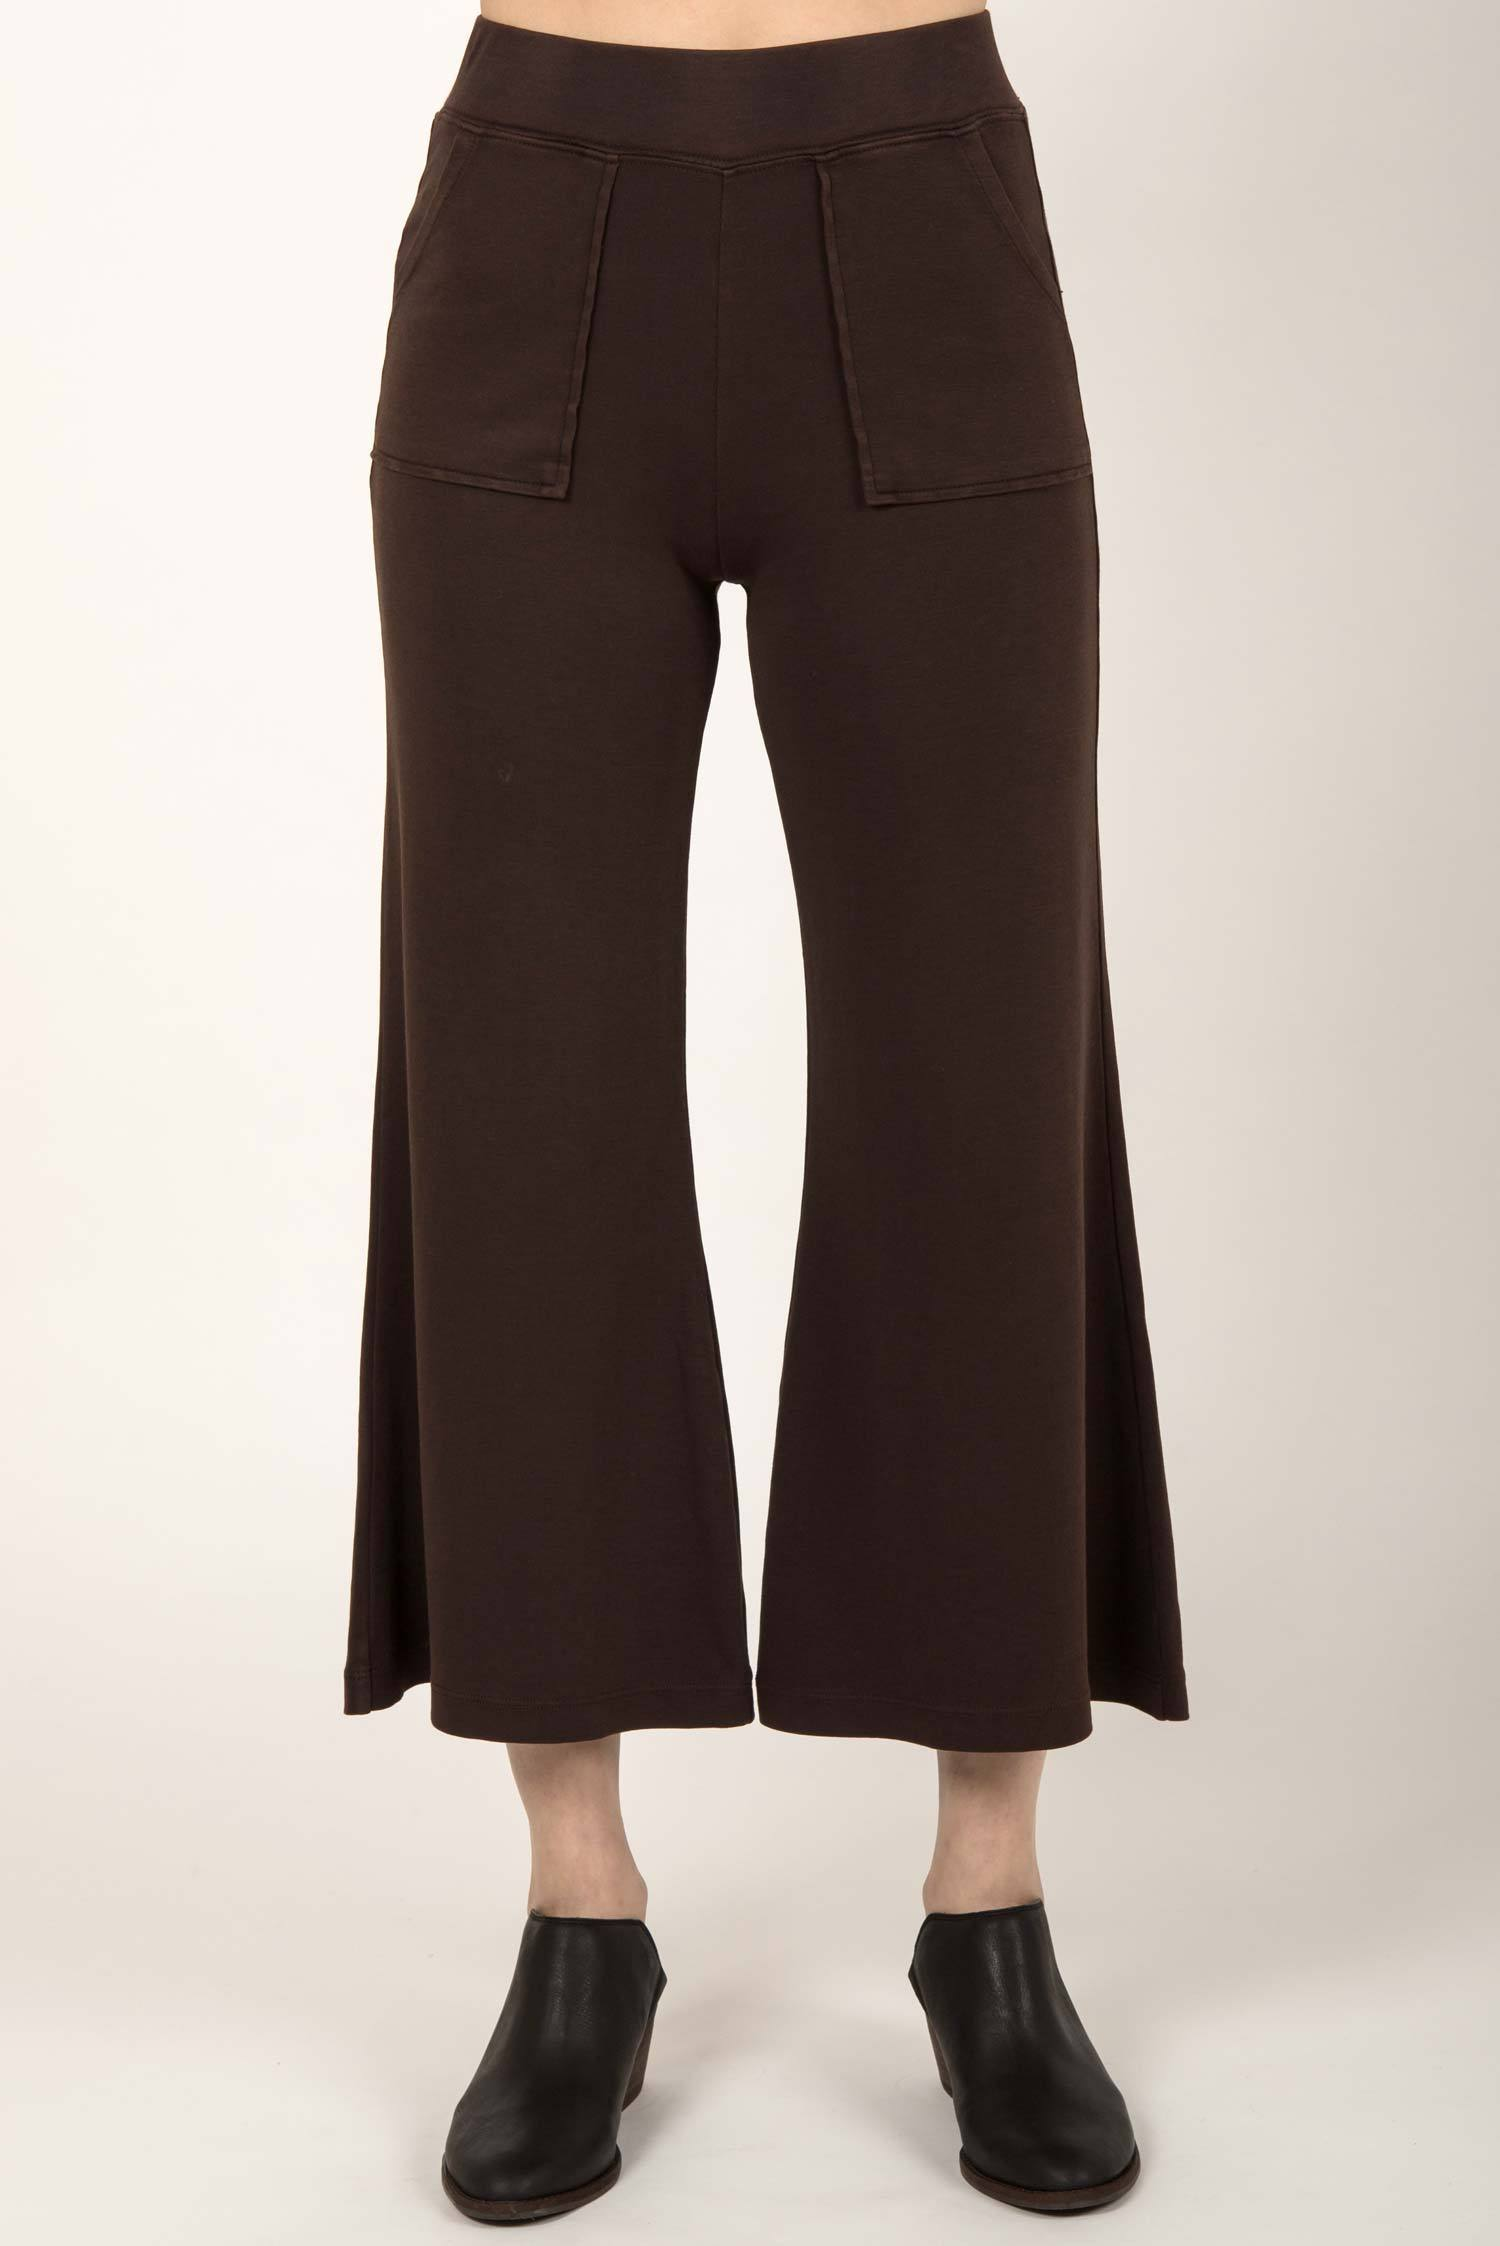 Womens organic cotton pants | Cropped Wide Leg Pant | Brown